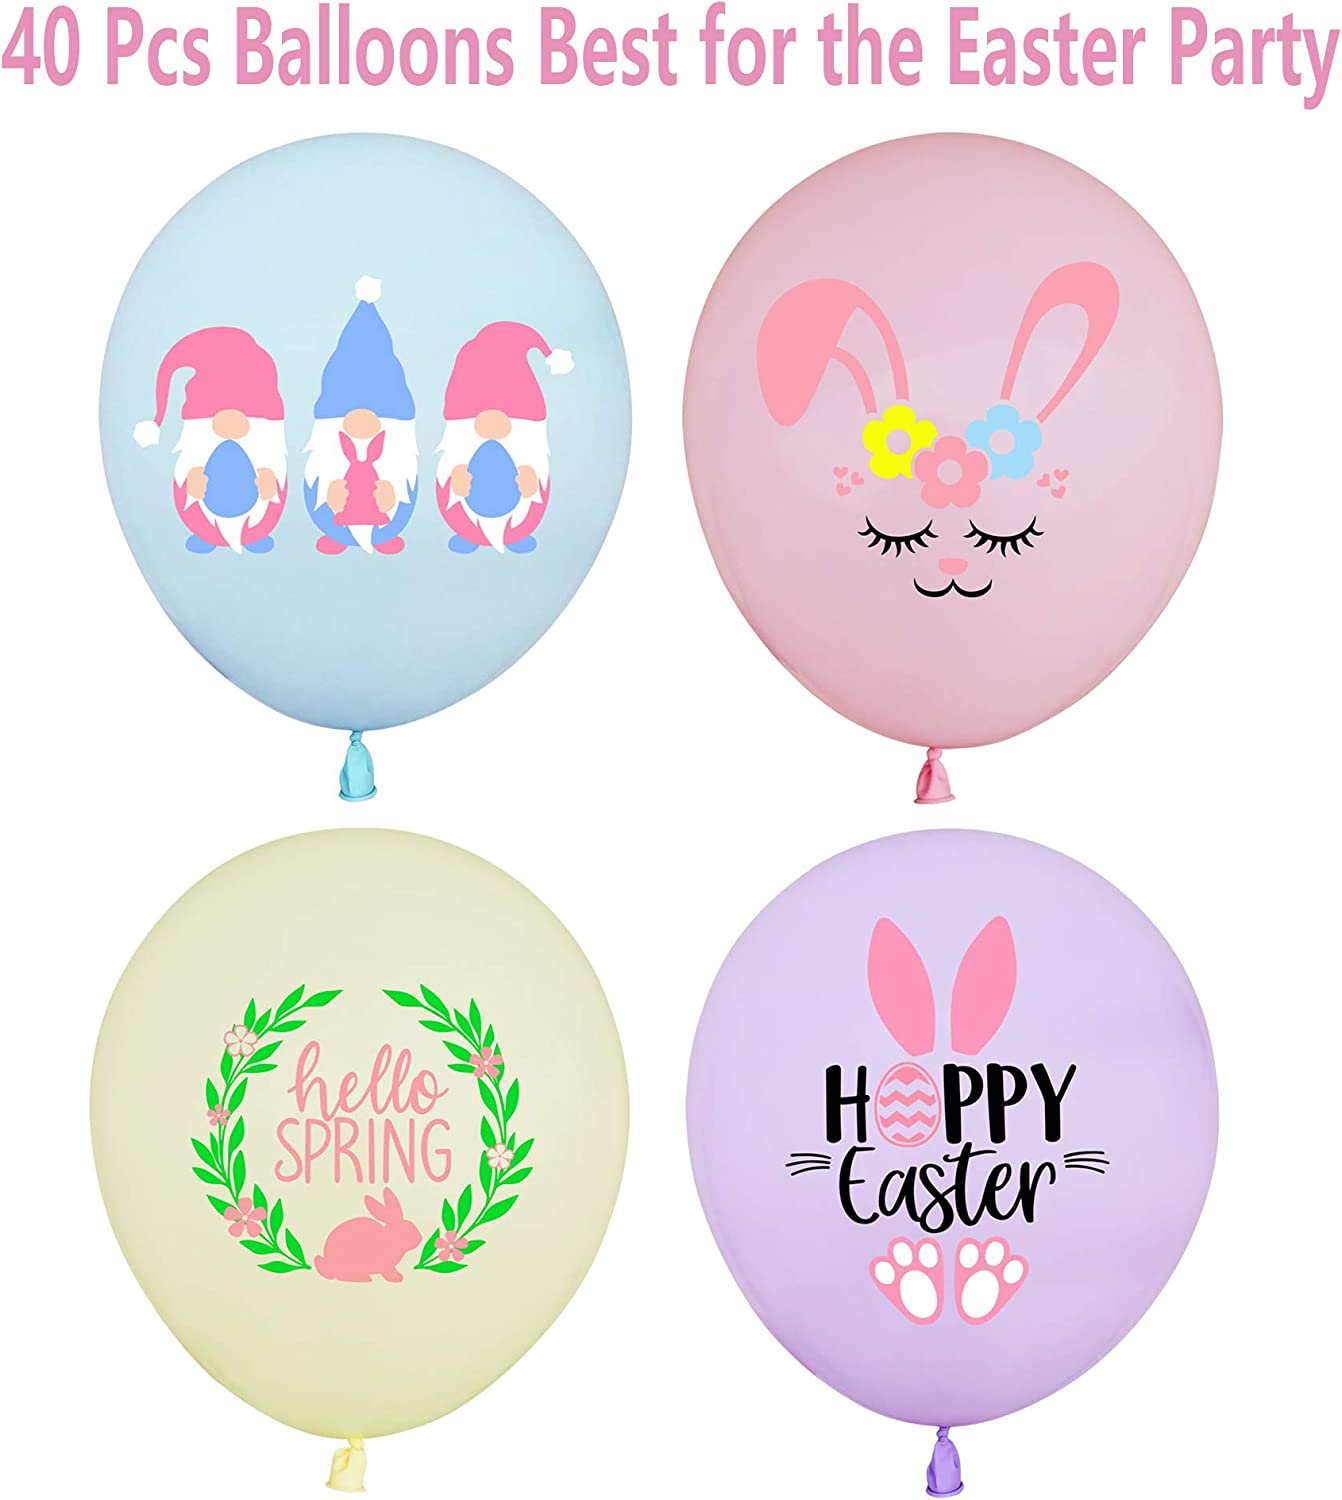 Spring Easter Birthday Party Decorations 40Pcs Easter Balloons Happy Easter Hello Spring Party Decorations Easter Party Supplies and Decorations Spring Bunny Gnome Balloons